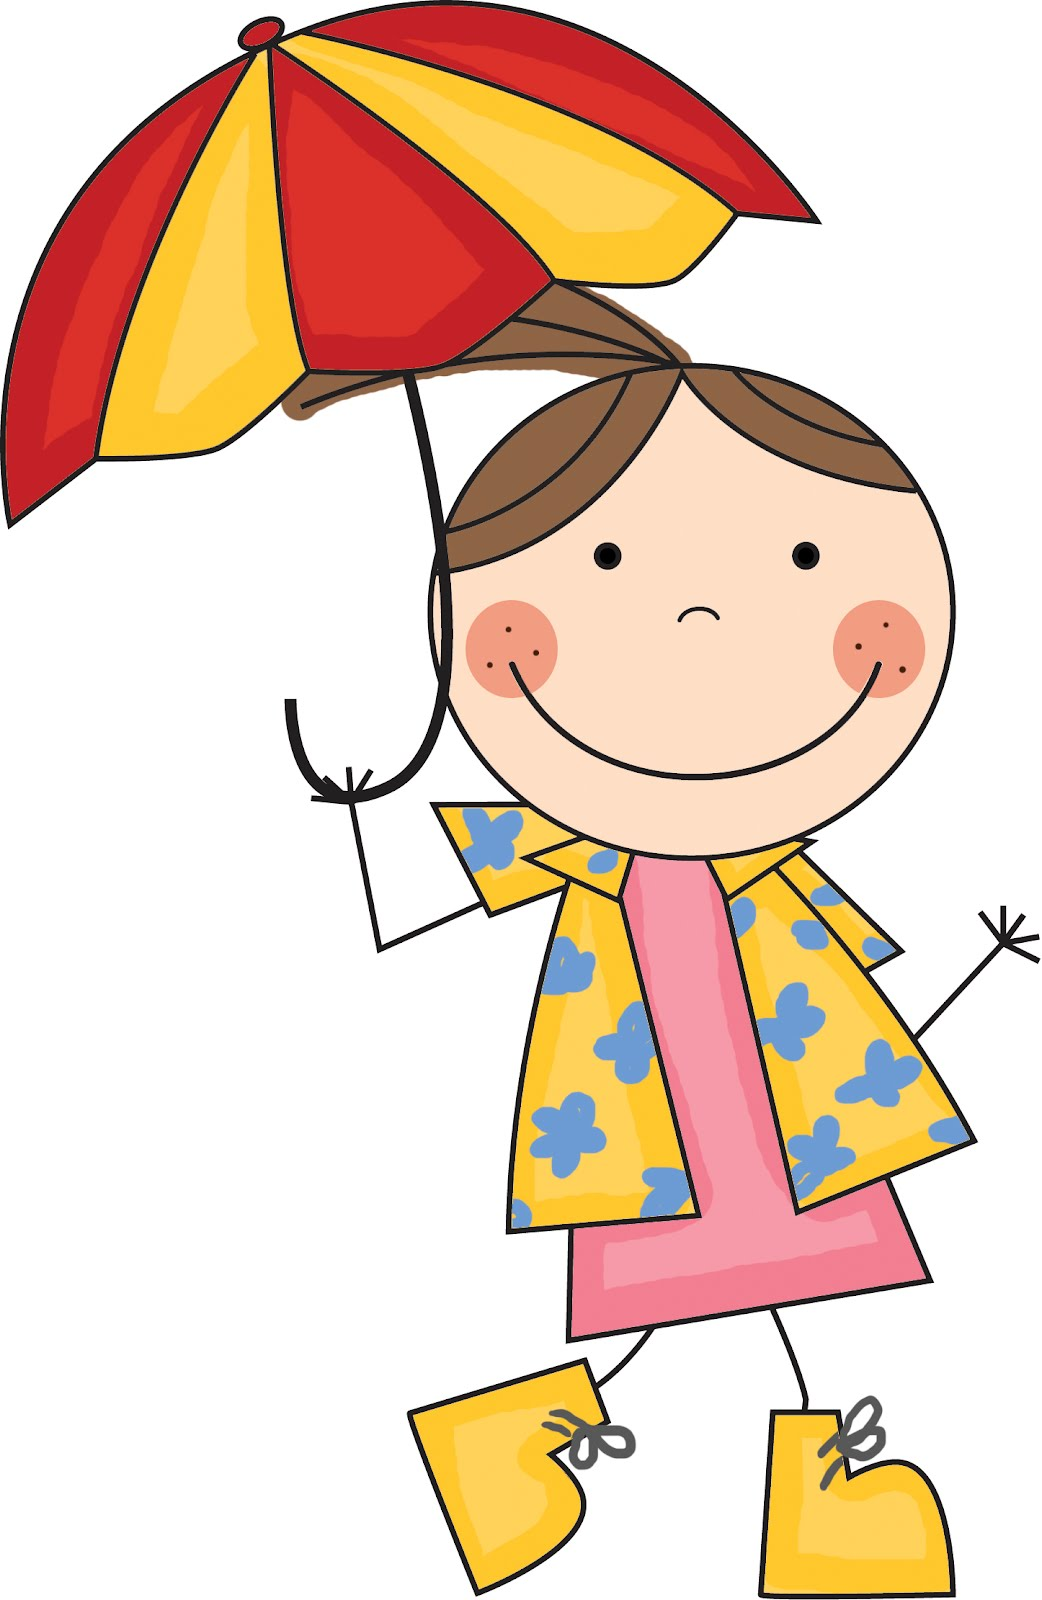 Free Weather Art For Kids, Download Free Clip Art, Free Clip.